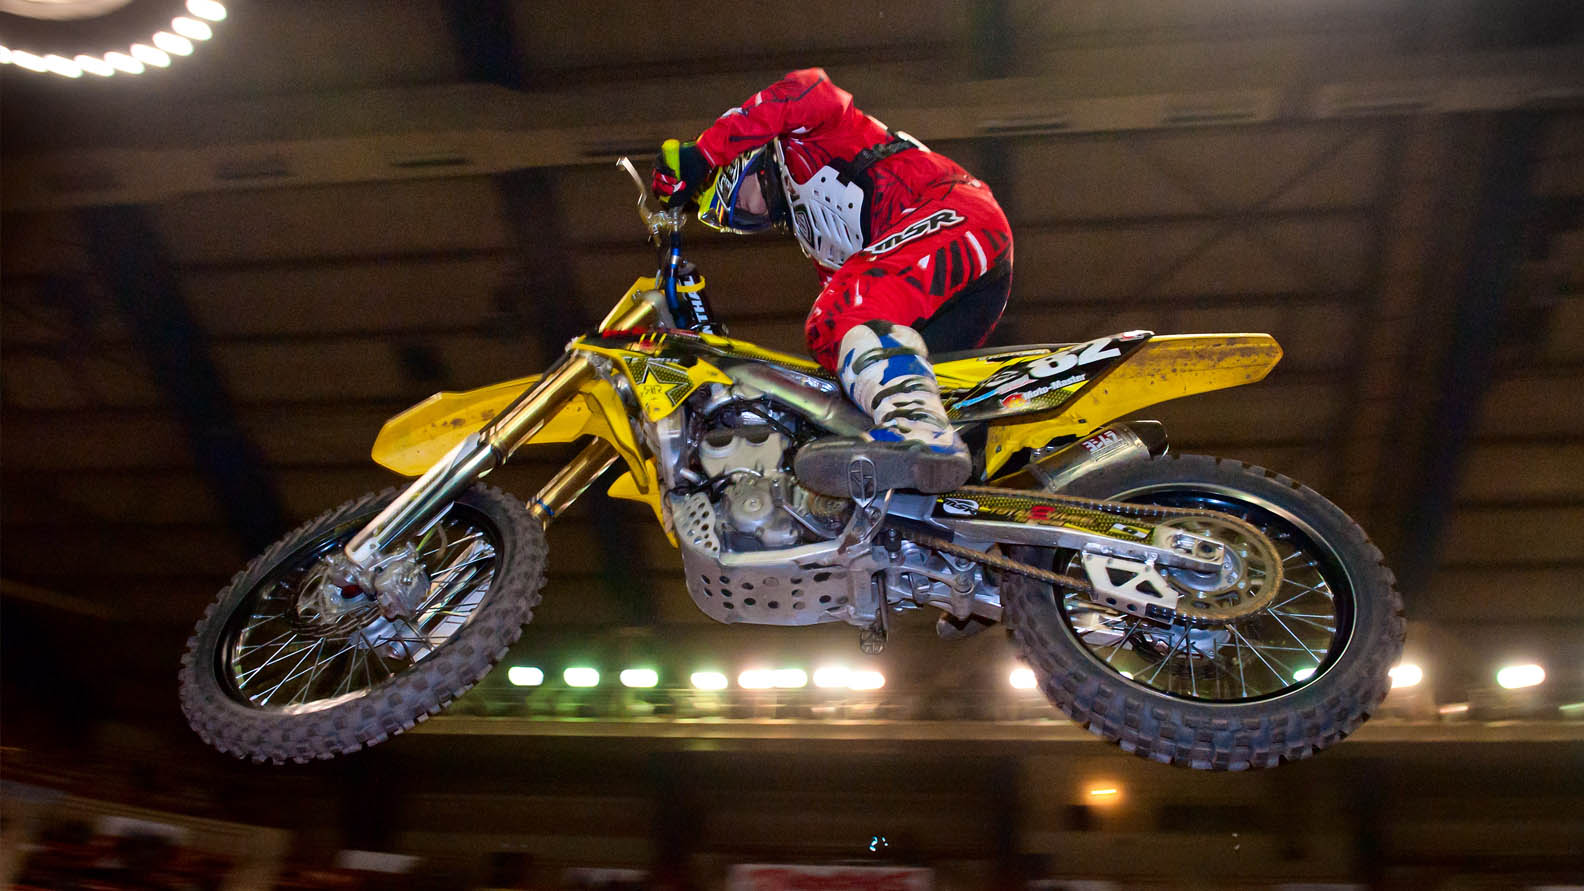 Arenacross bike taking flight at the 34th Annual Motorama - Ms Motorama - Harrisburg PA - Main Arena, Pennsylvania Farm Show Complex